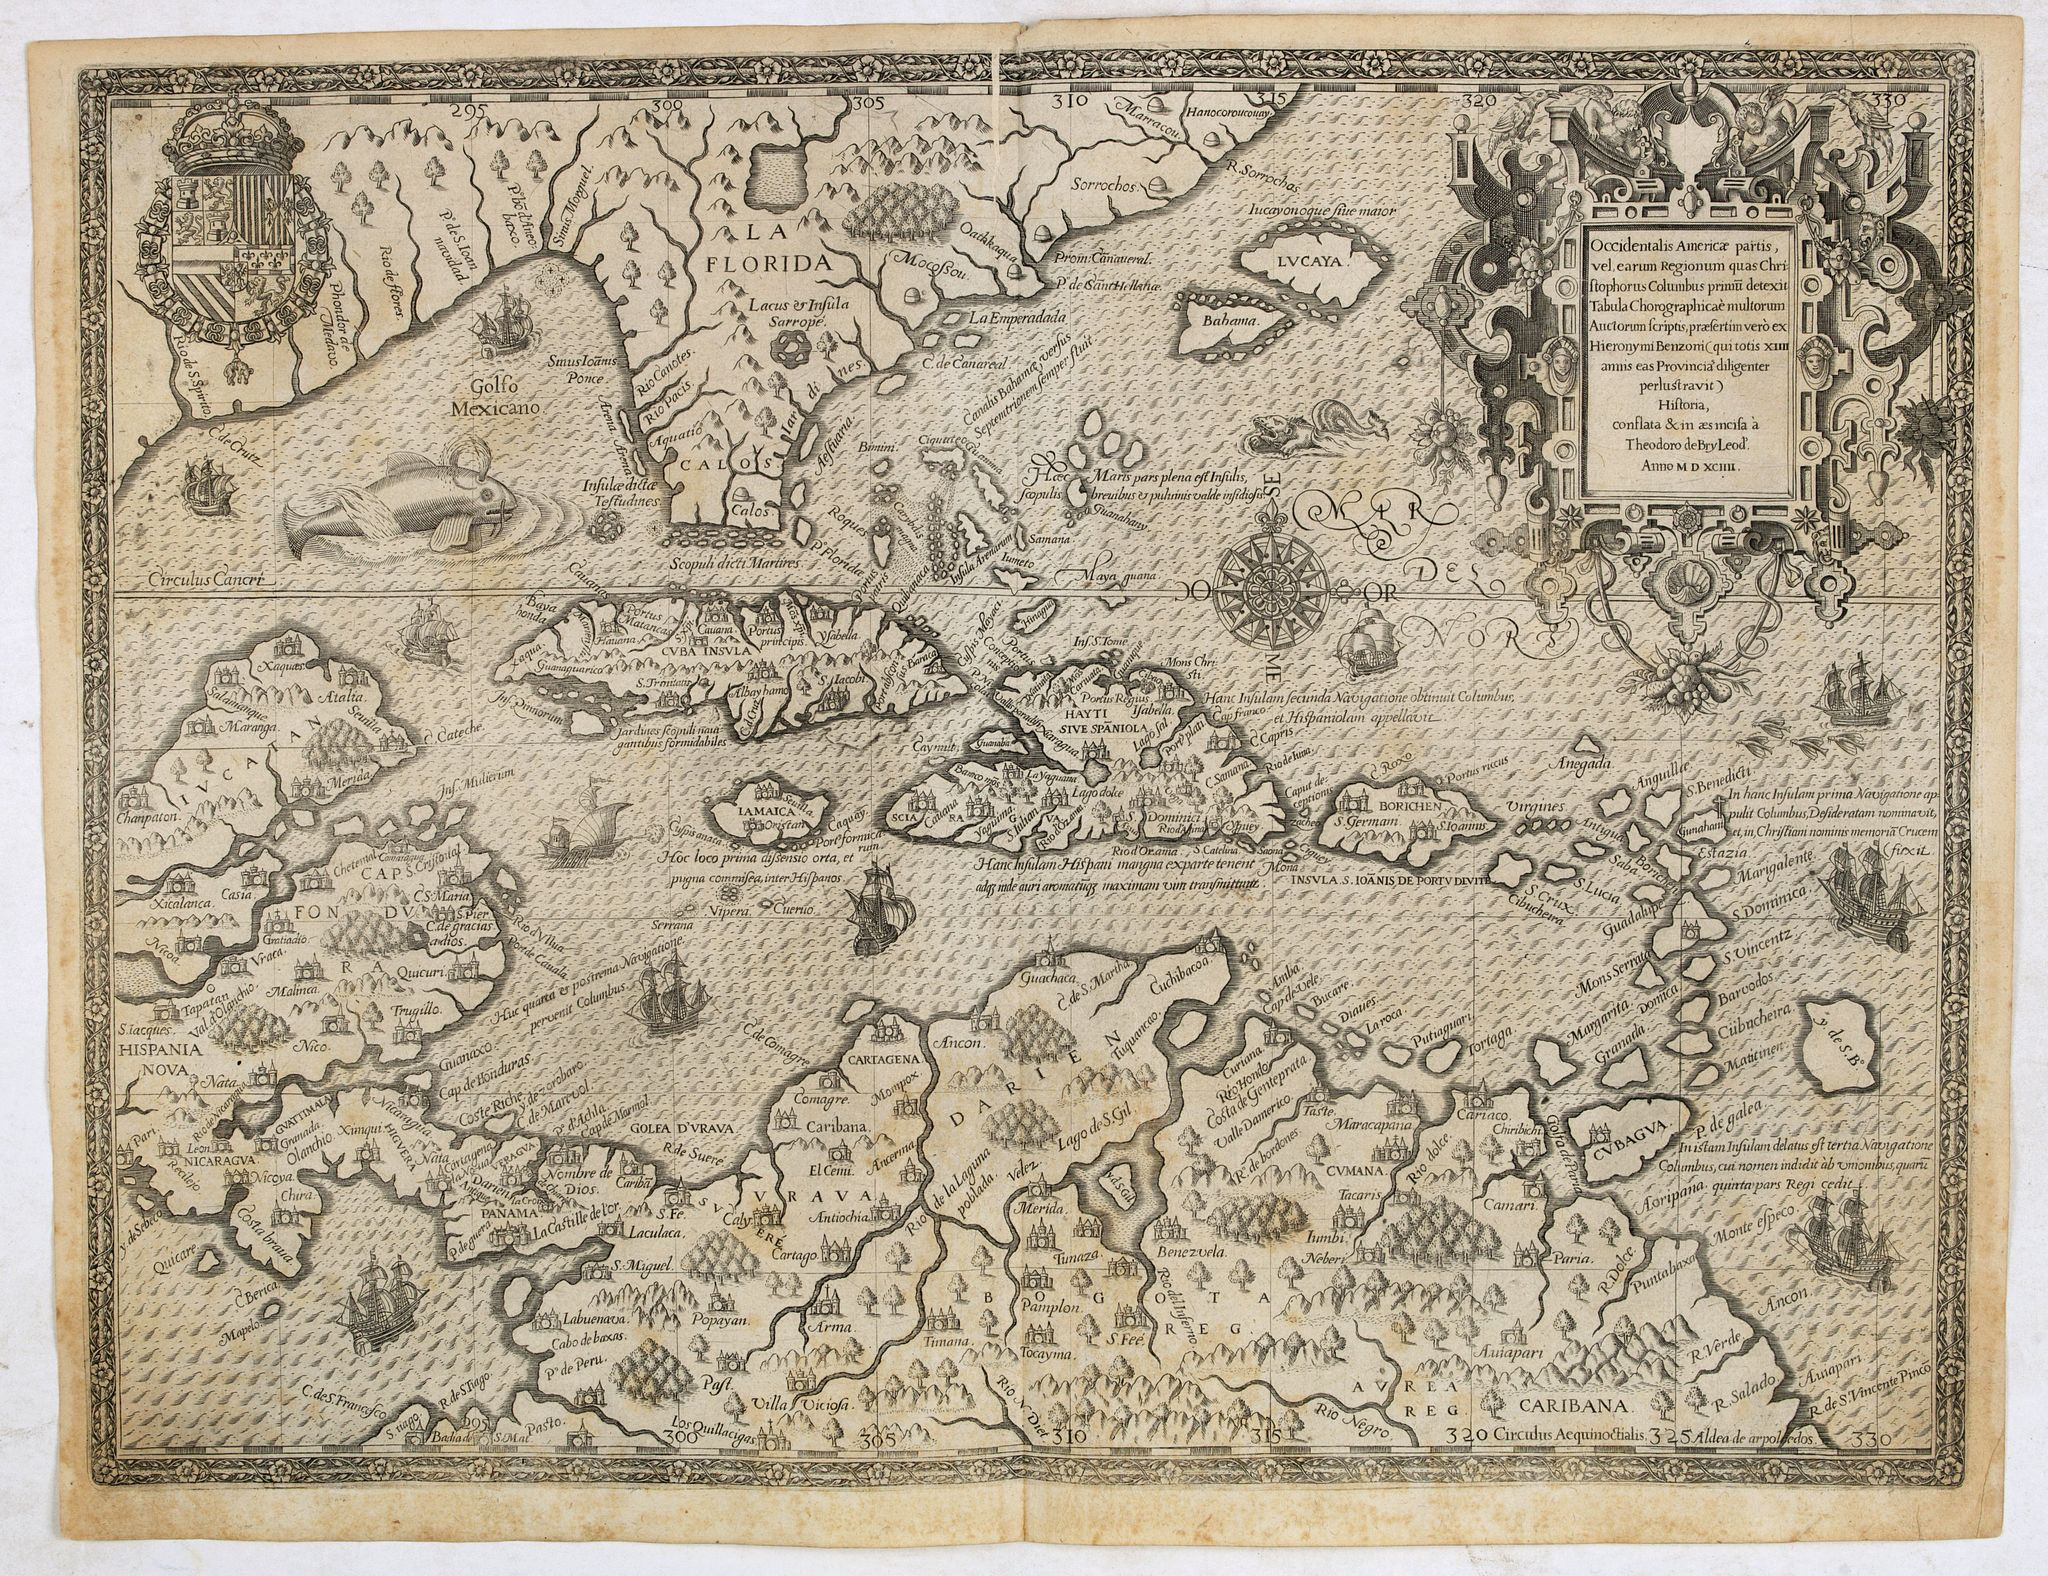 DE BRY, Th.,  Occidentalis Americae partis., antique map, old maps